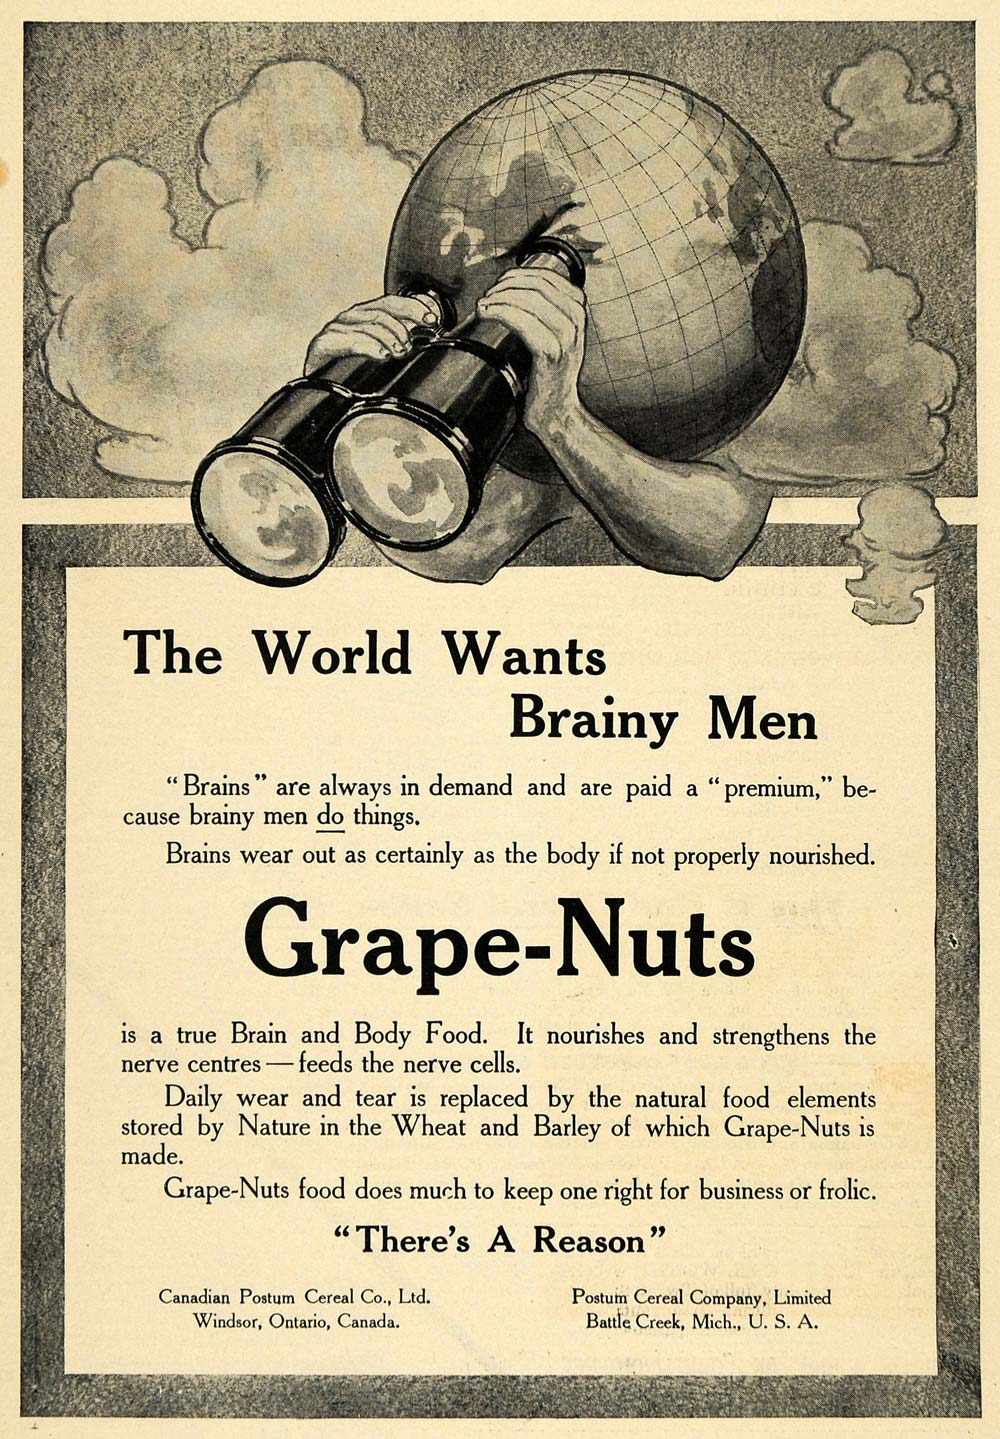 Grape-Nuts for Your Brain